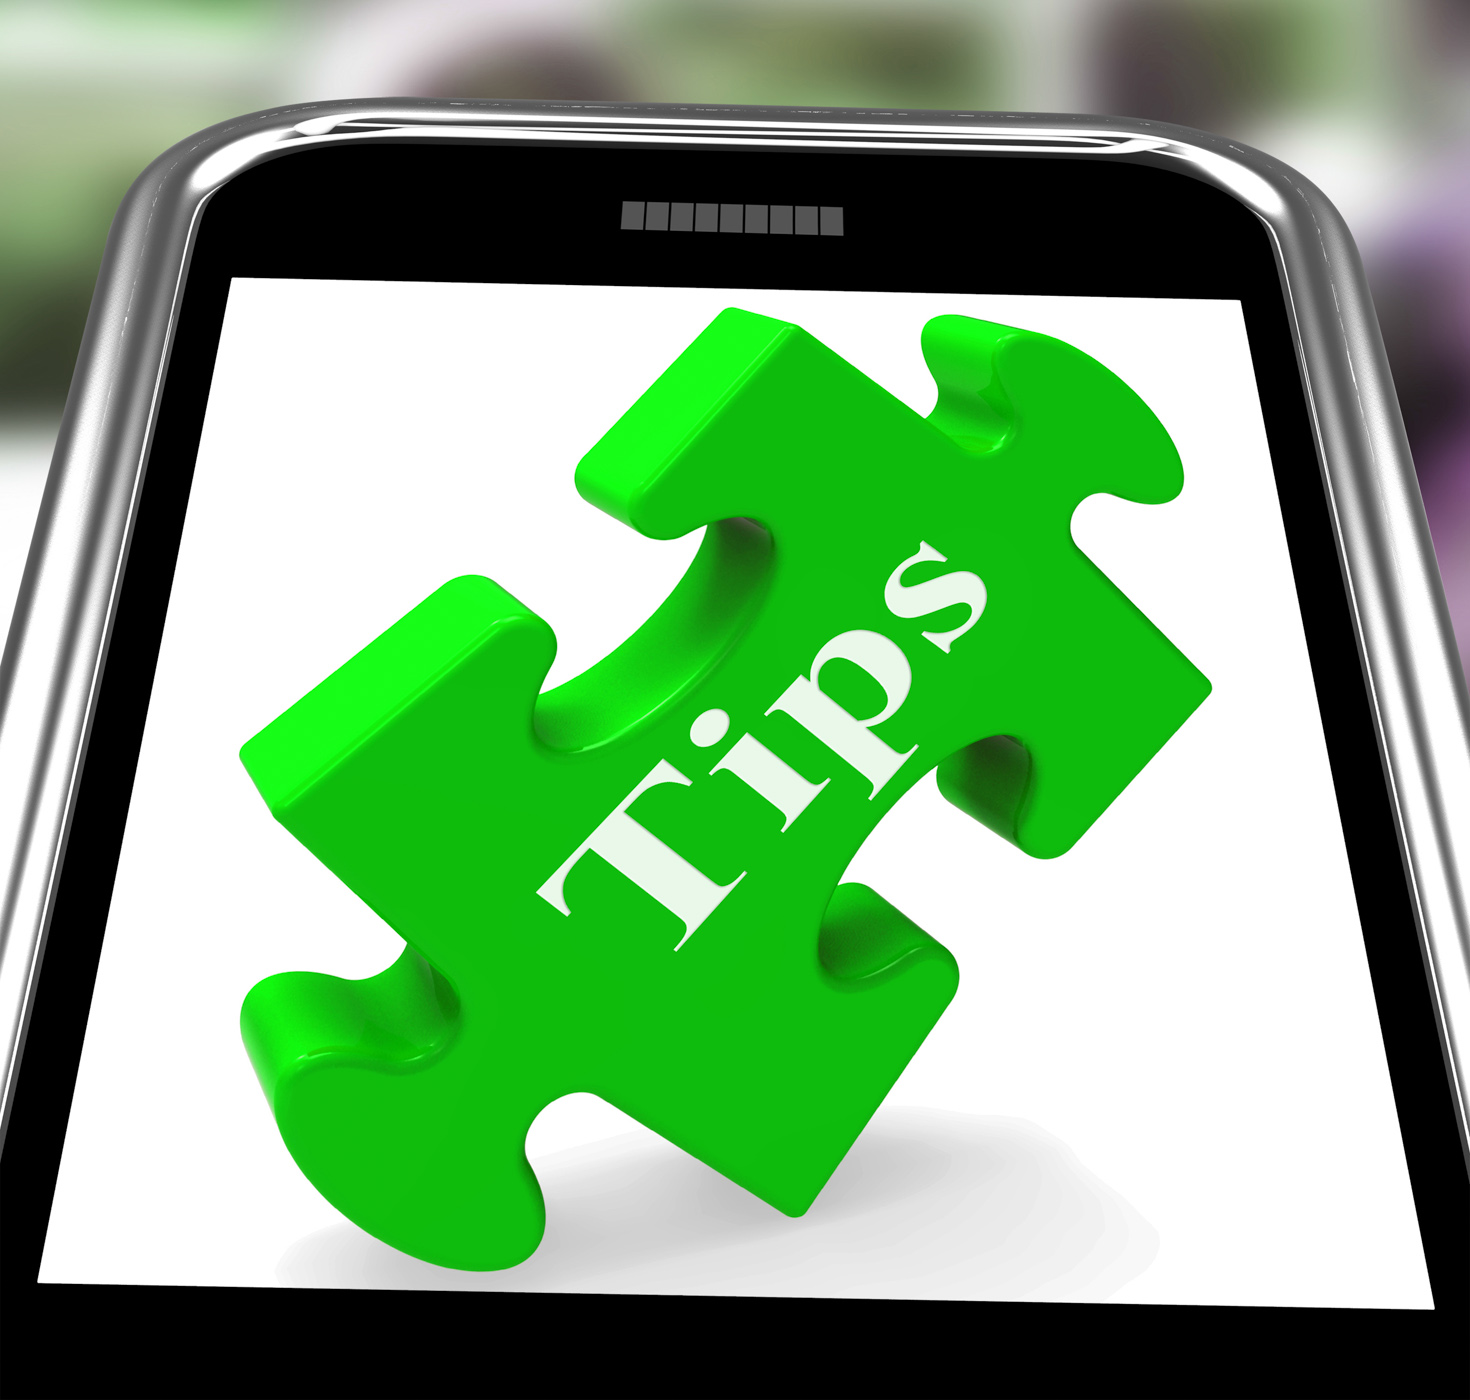 Tips Smartphone Shows Online Suggestions And Pointers, Advice, Prompt, Tips, Tip, HQ Photo